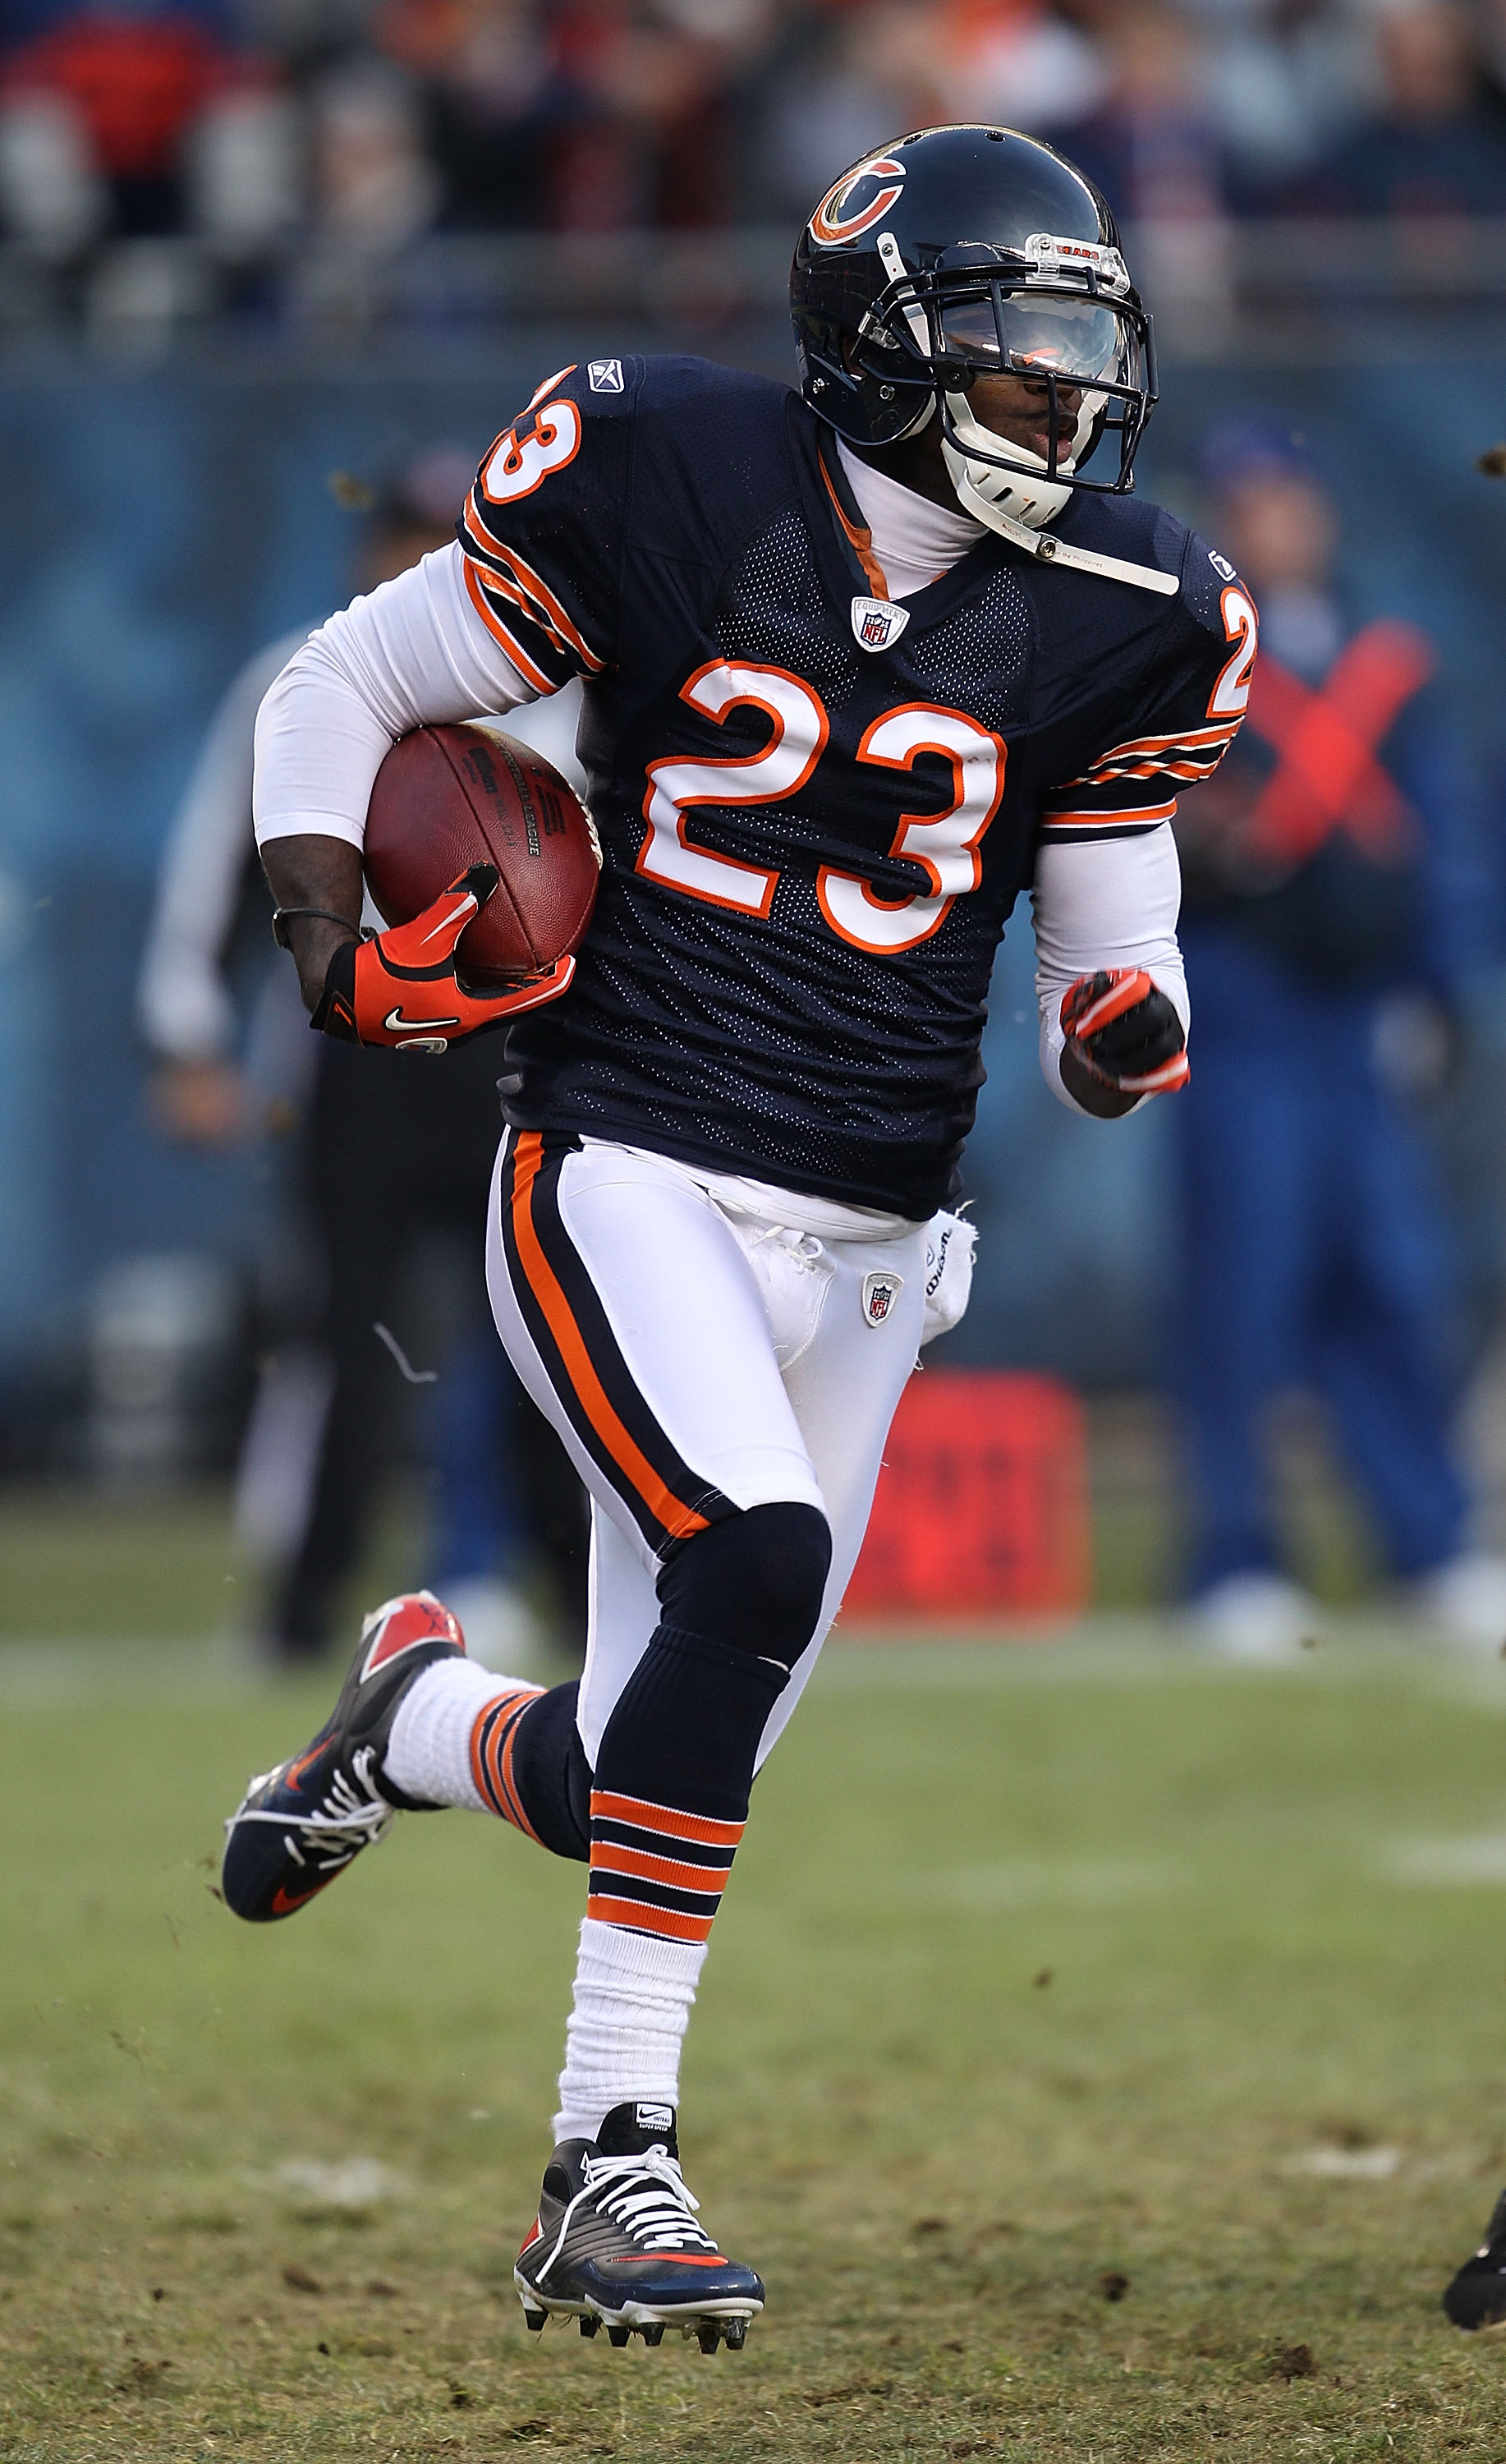 CHICAGO - NOVEMBER 28: Devin Hetser #23 of the Chicago Bears returns a kick against the Philadelphia Eagles at Soldier Field on November 28, 2010 in Chicago, Illinois. The Bears defeated the Eagles 31-26. (Photo by Jonathan Daniel/Getty Images)